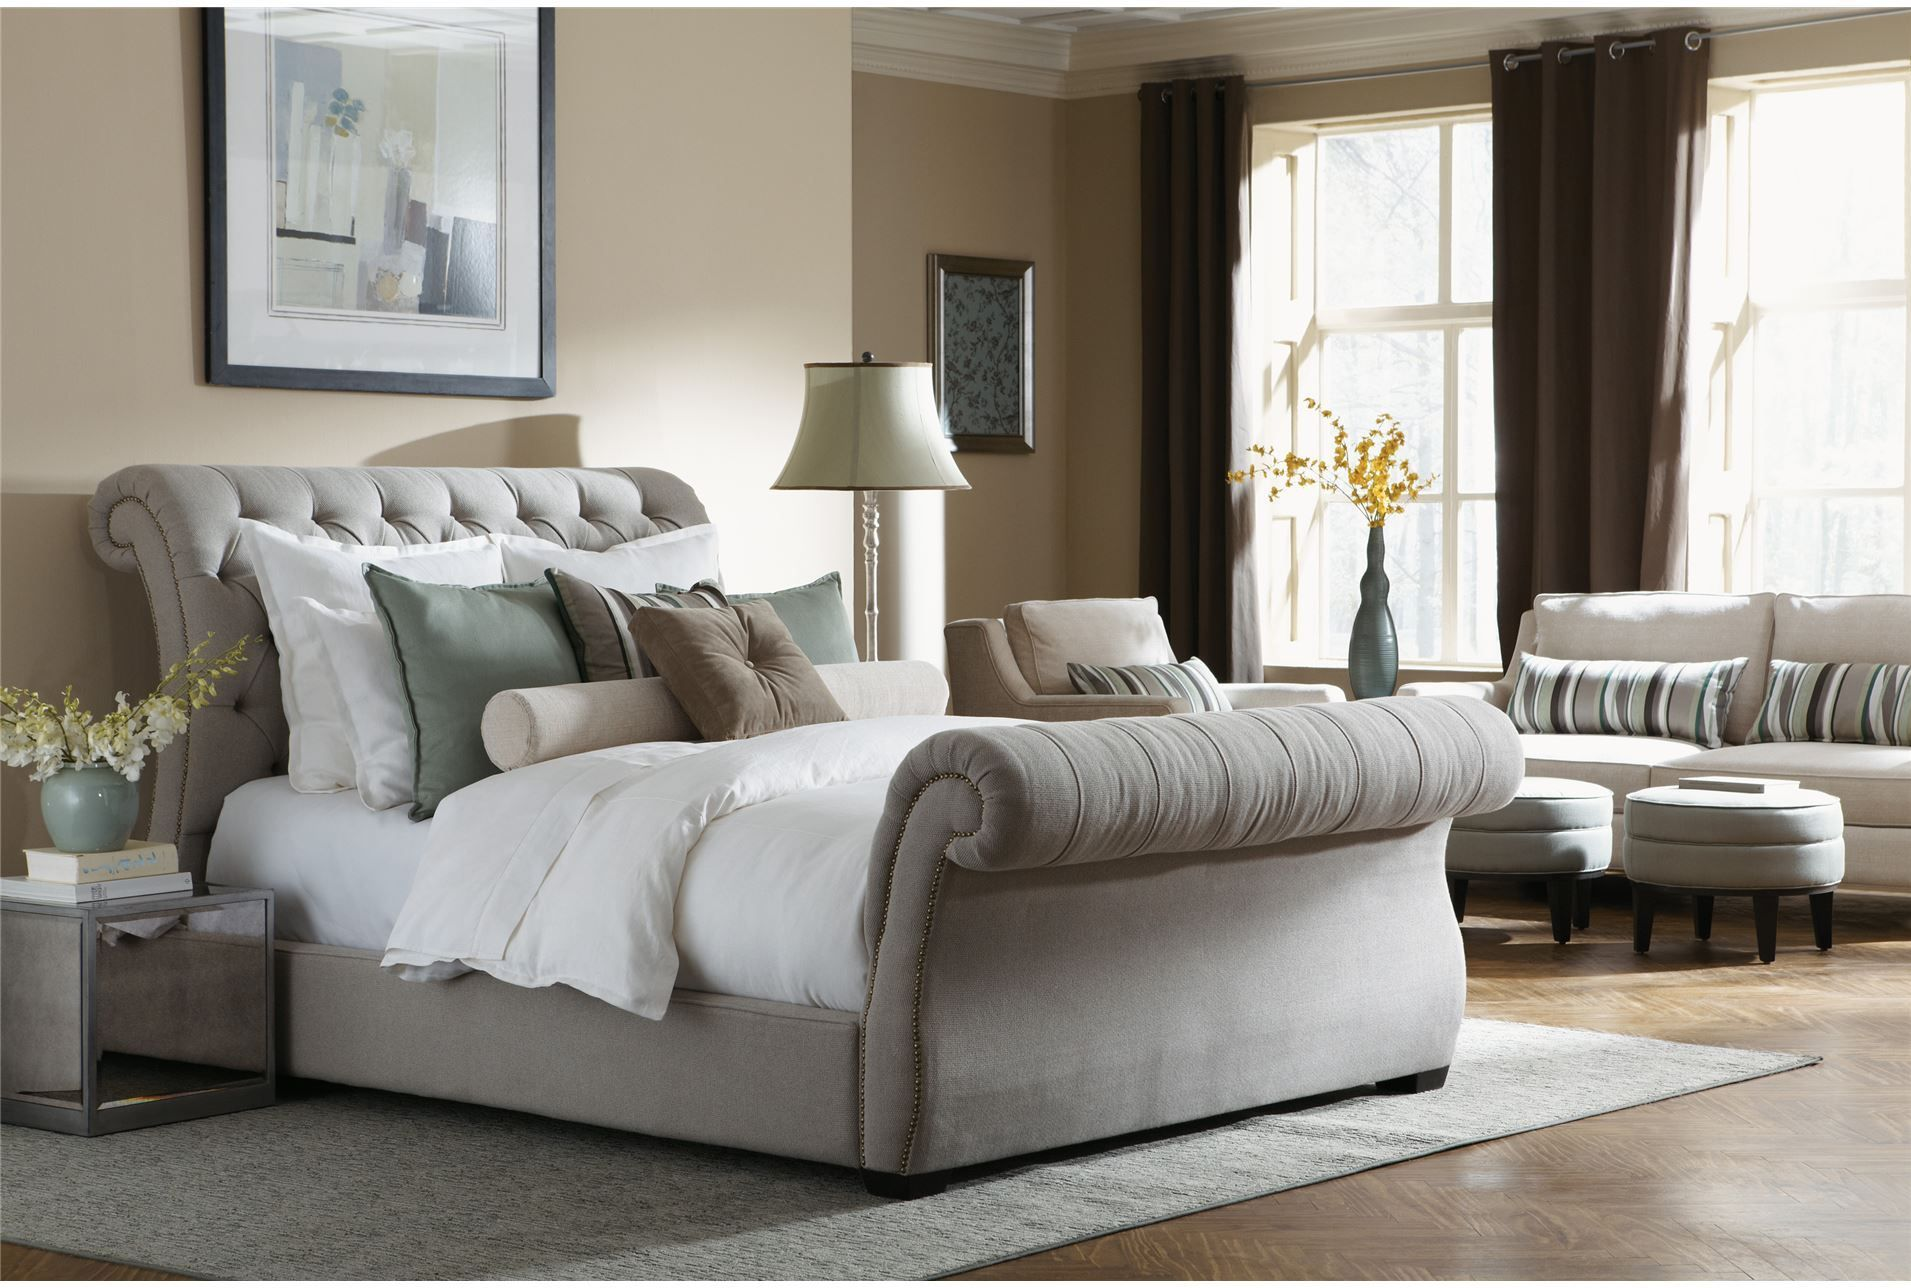 Tufted sleigh bed fabric upholstery king bed with soft grey tufted headboard and luxurious Master bedrooms with upholstered beds